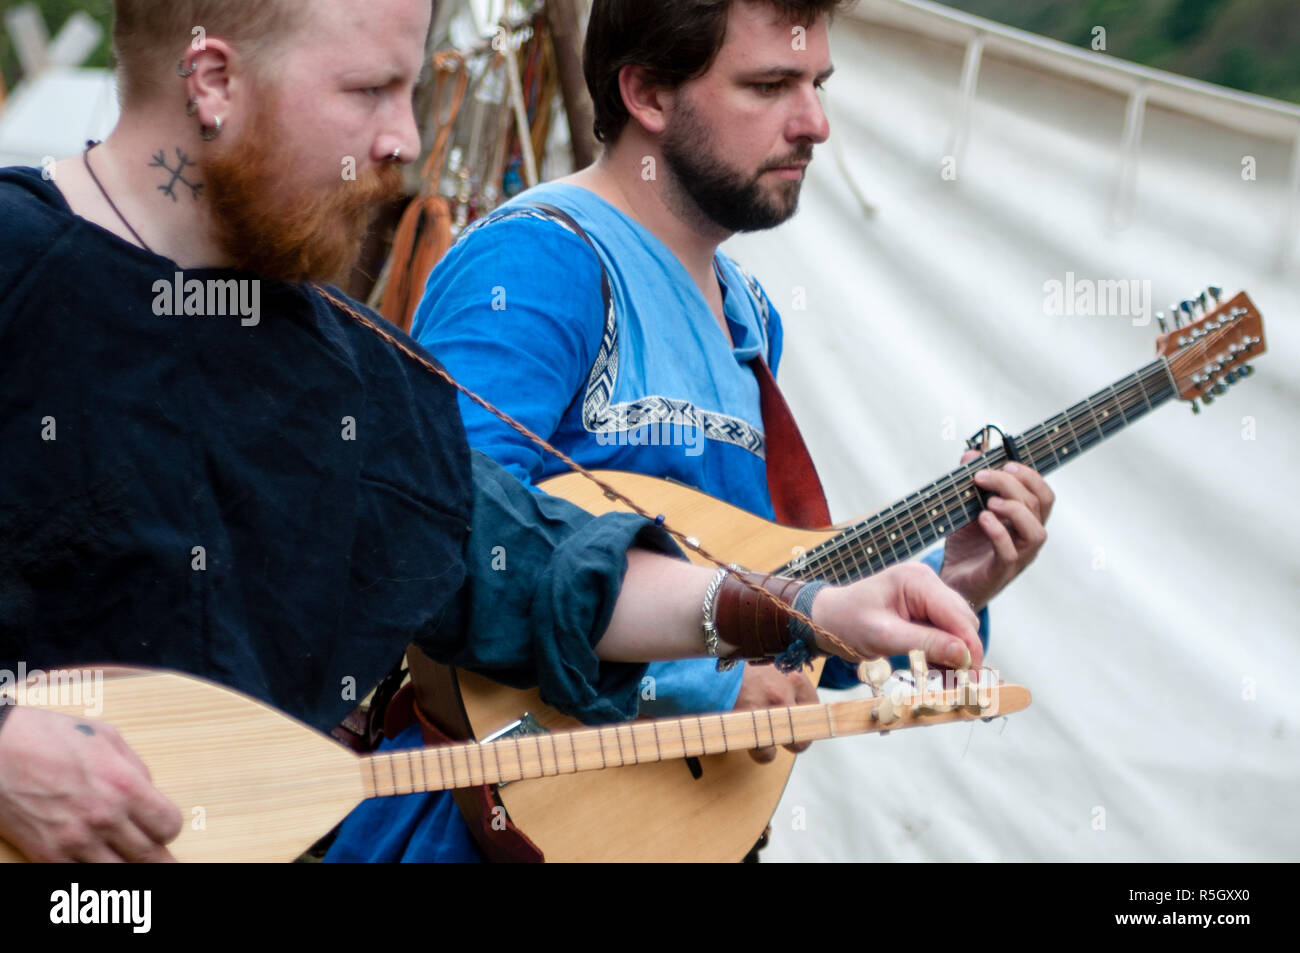 Two viking re-enactors playing stringed musical instruments at Gudvangen viking market, Norway - Stock Image